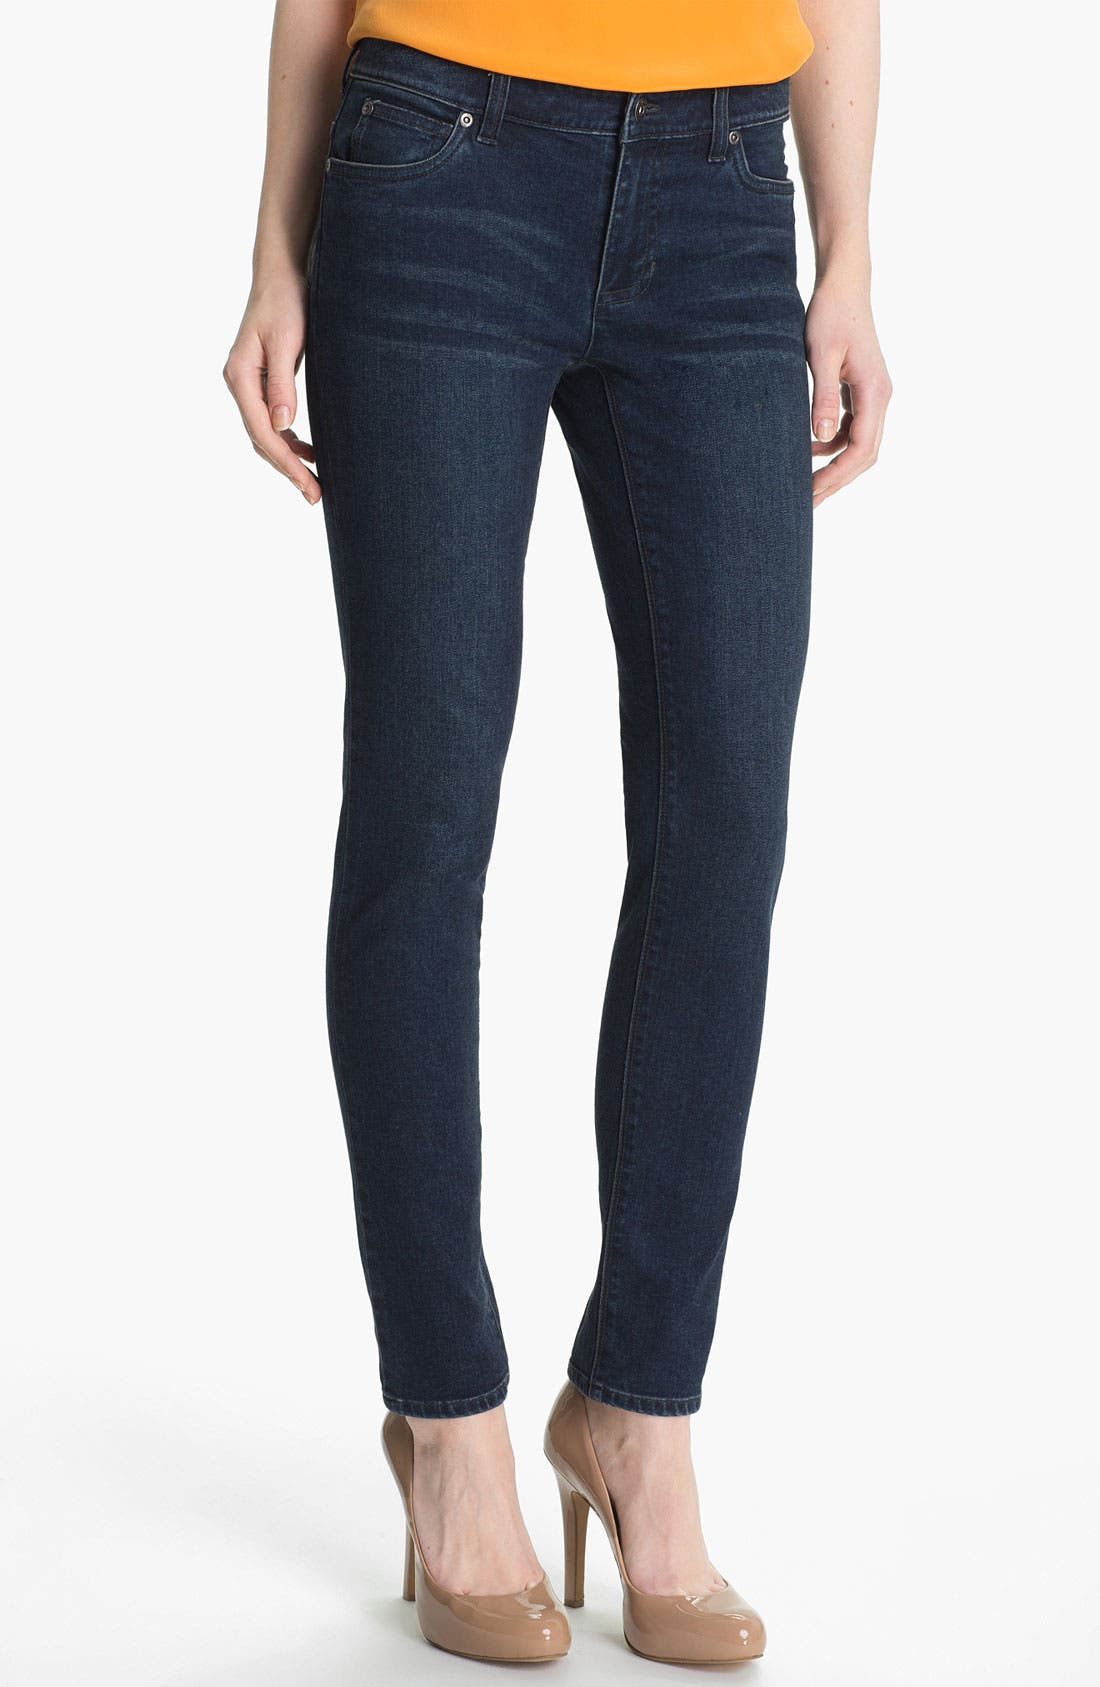 Main Image - Two by Vince Camuto Straight Leg Jeans (Dark Rinse)